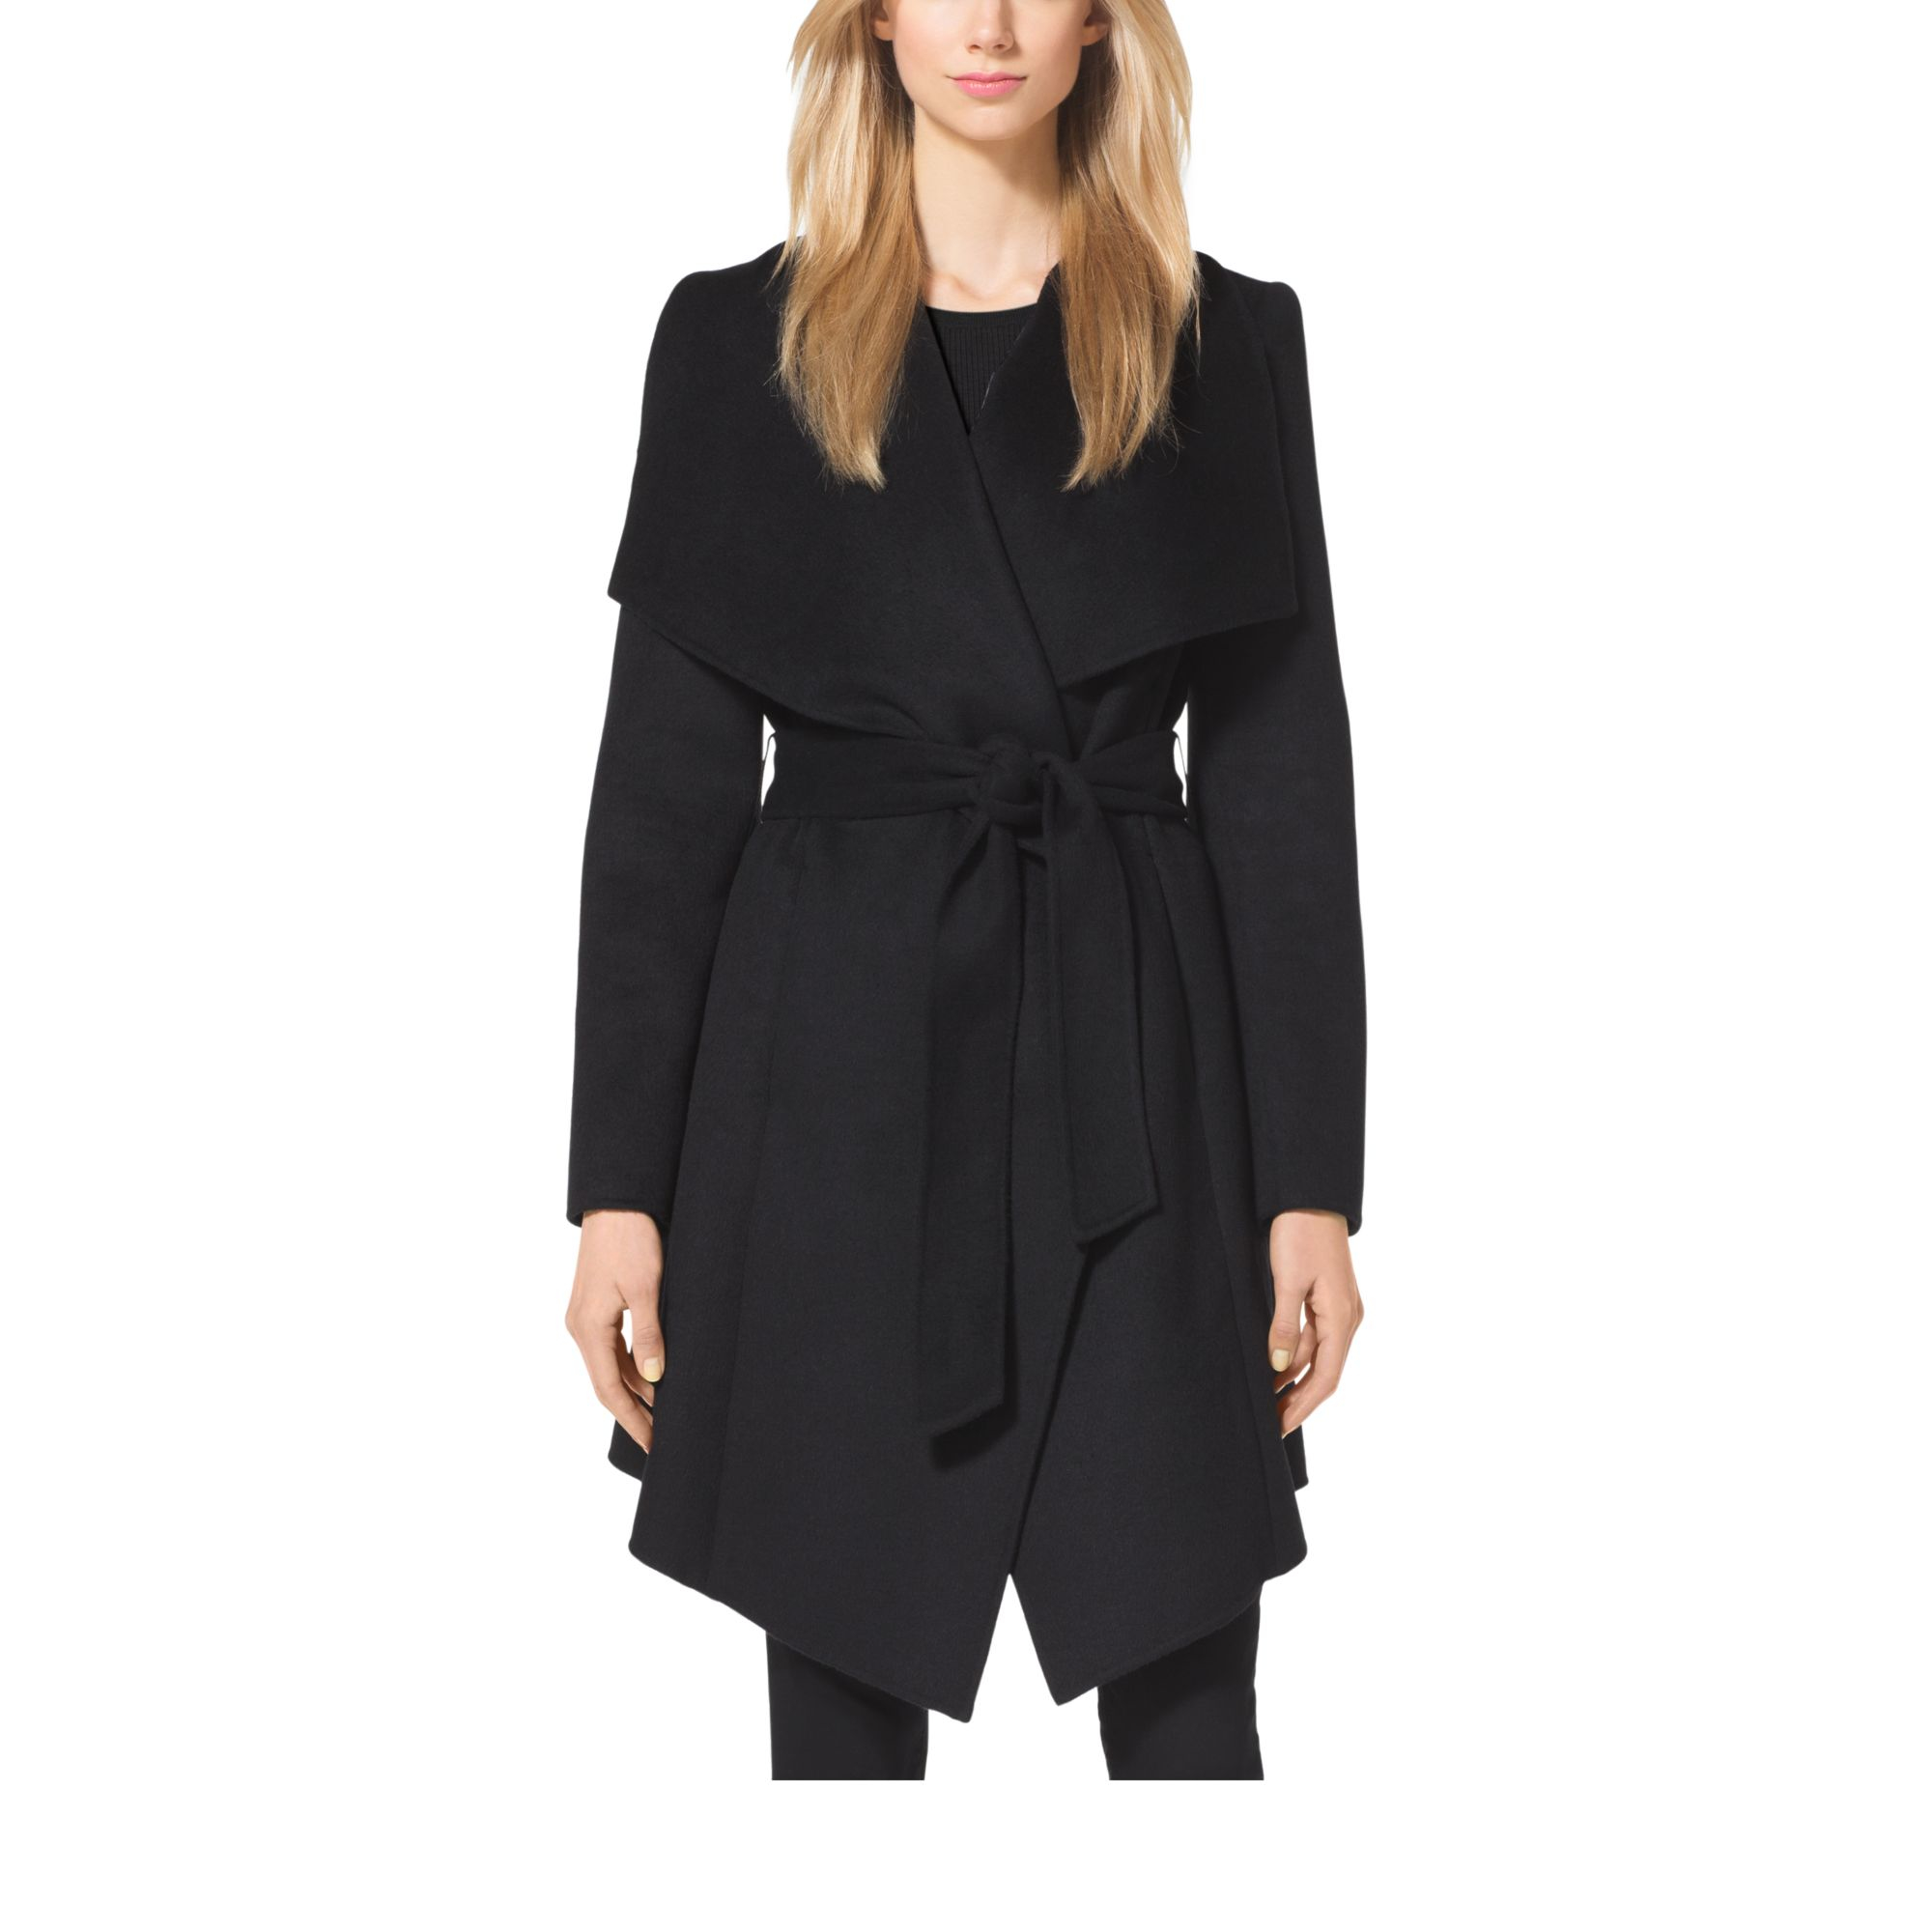 Michael kors Belted Double-face Wool Coat in Black | Lyst